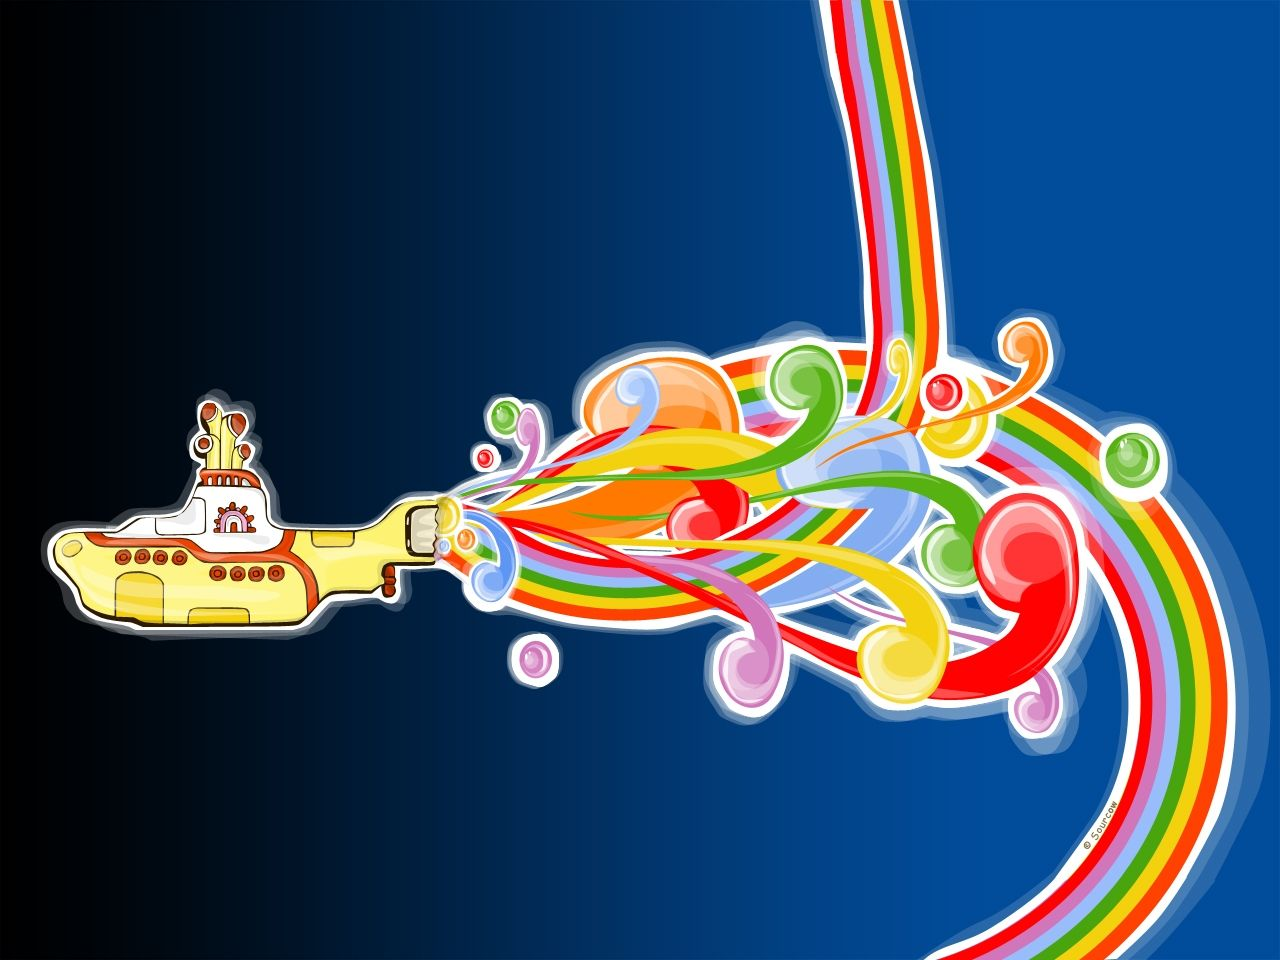 Wallpaper of Yellow Submarine Wallpaper for fans of The Beatles I 1280x960